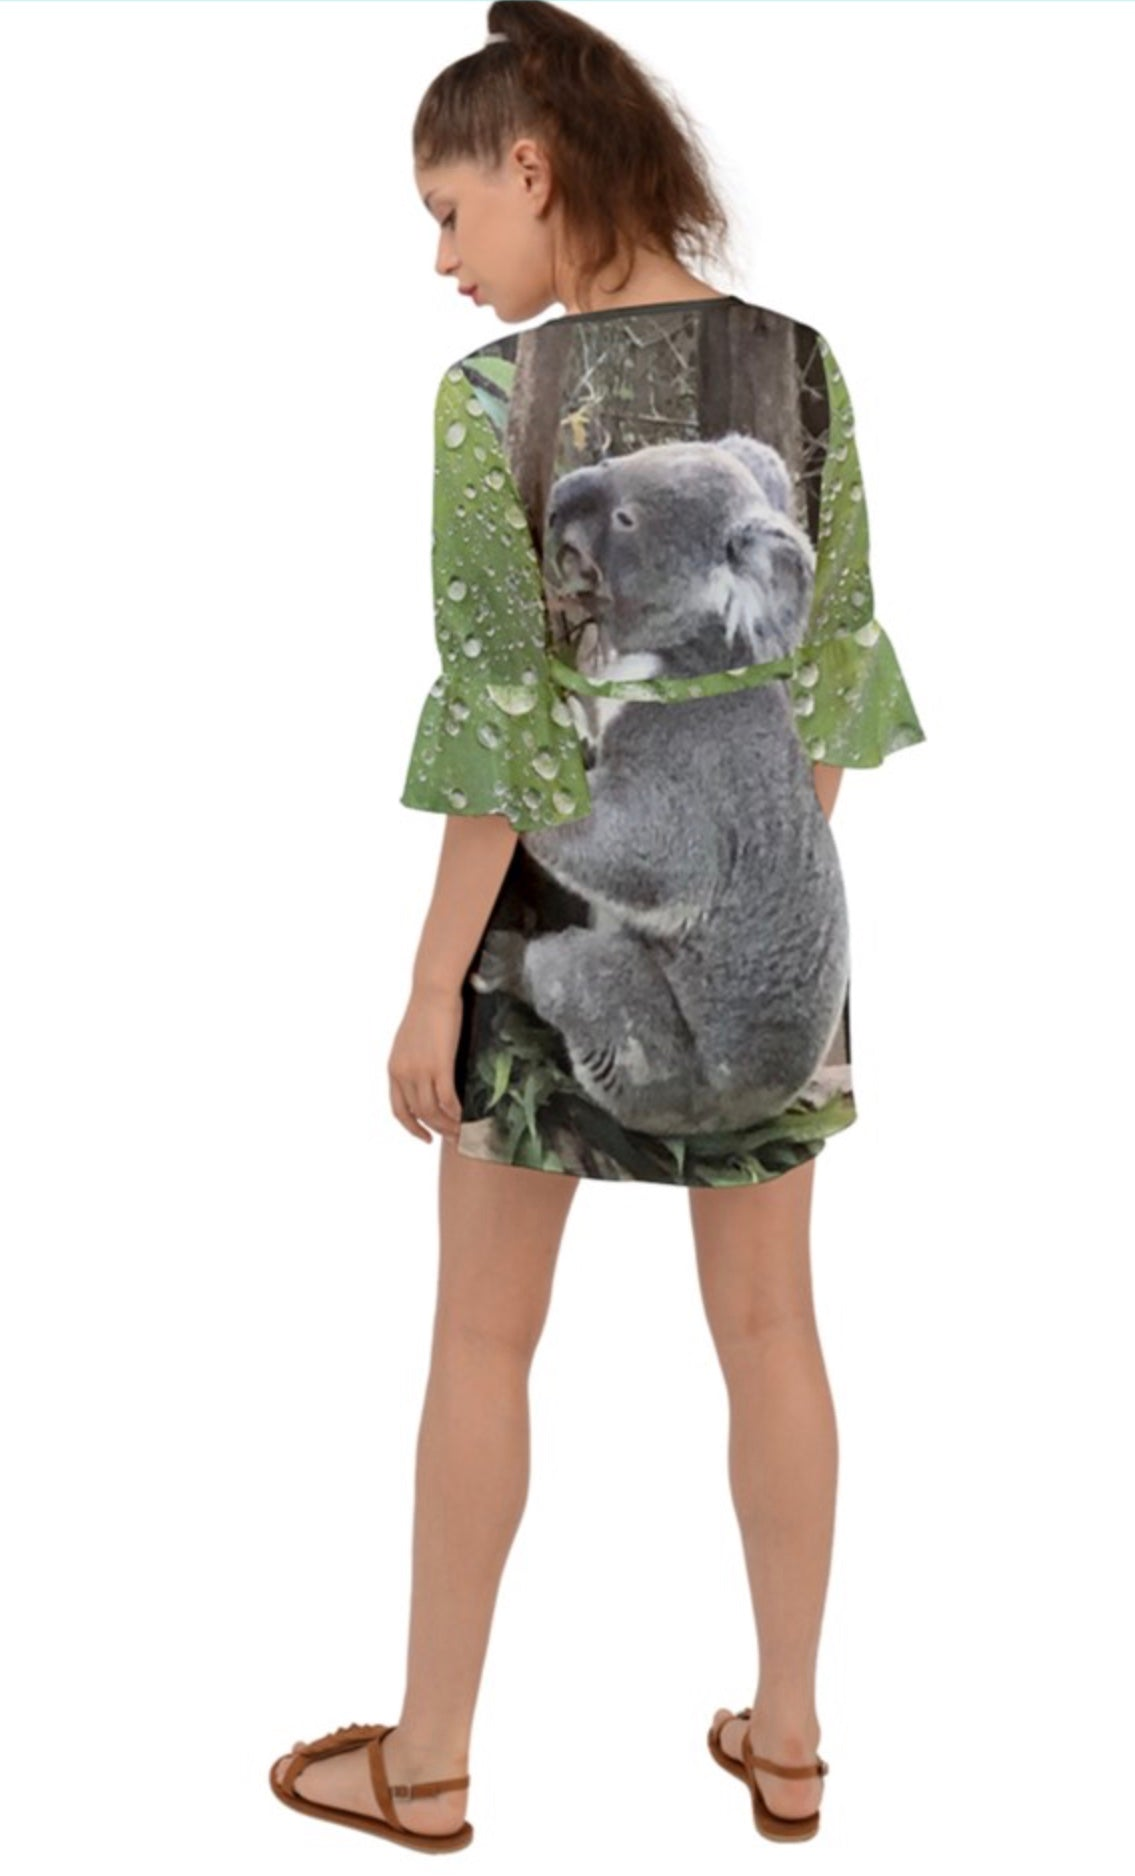 (NEW!) Koalas Love Rain Criss Cross Mini Dress